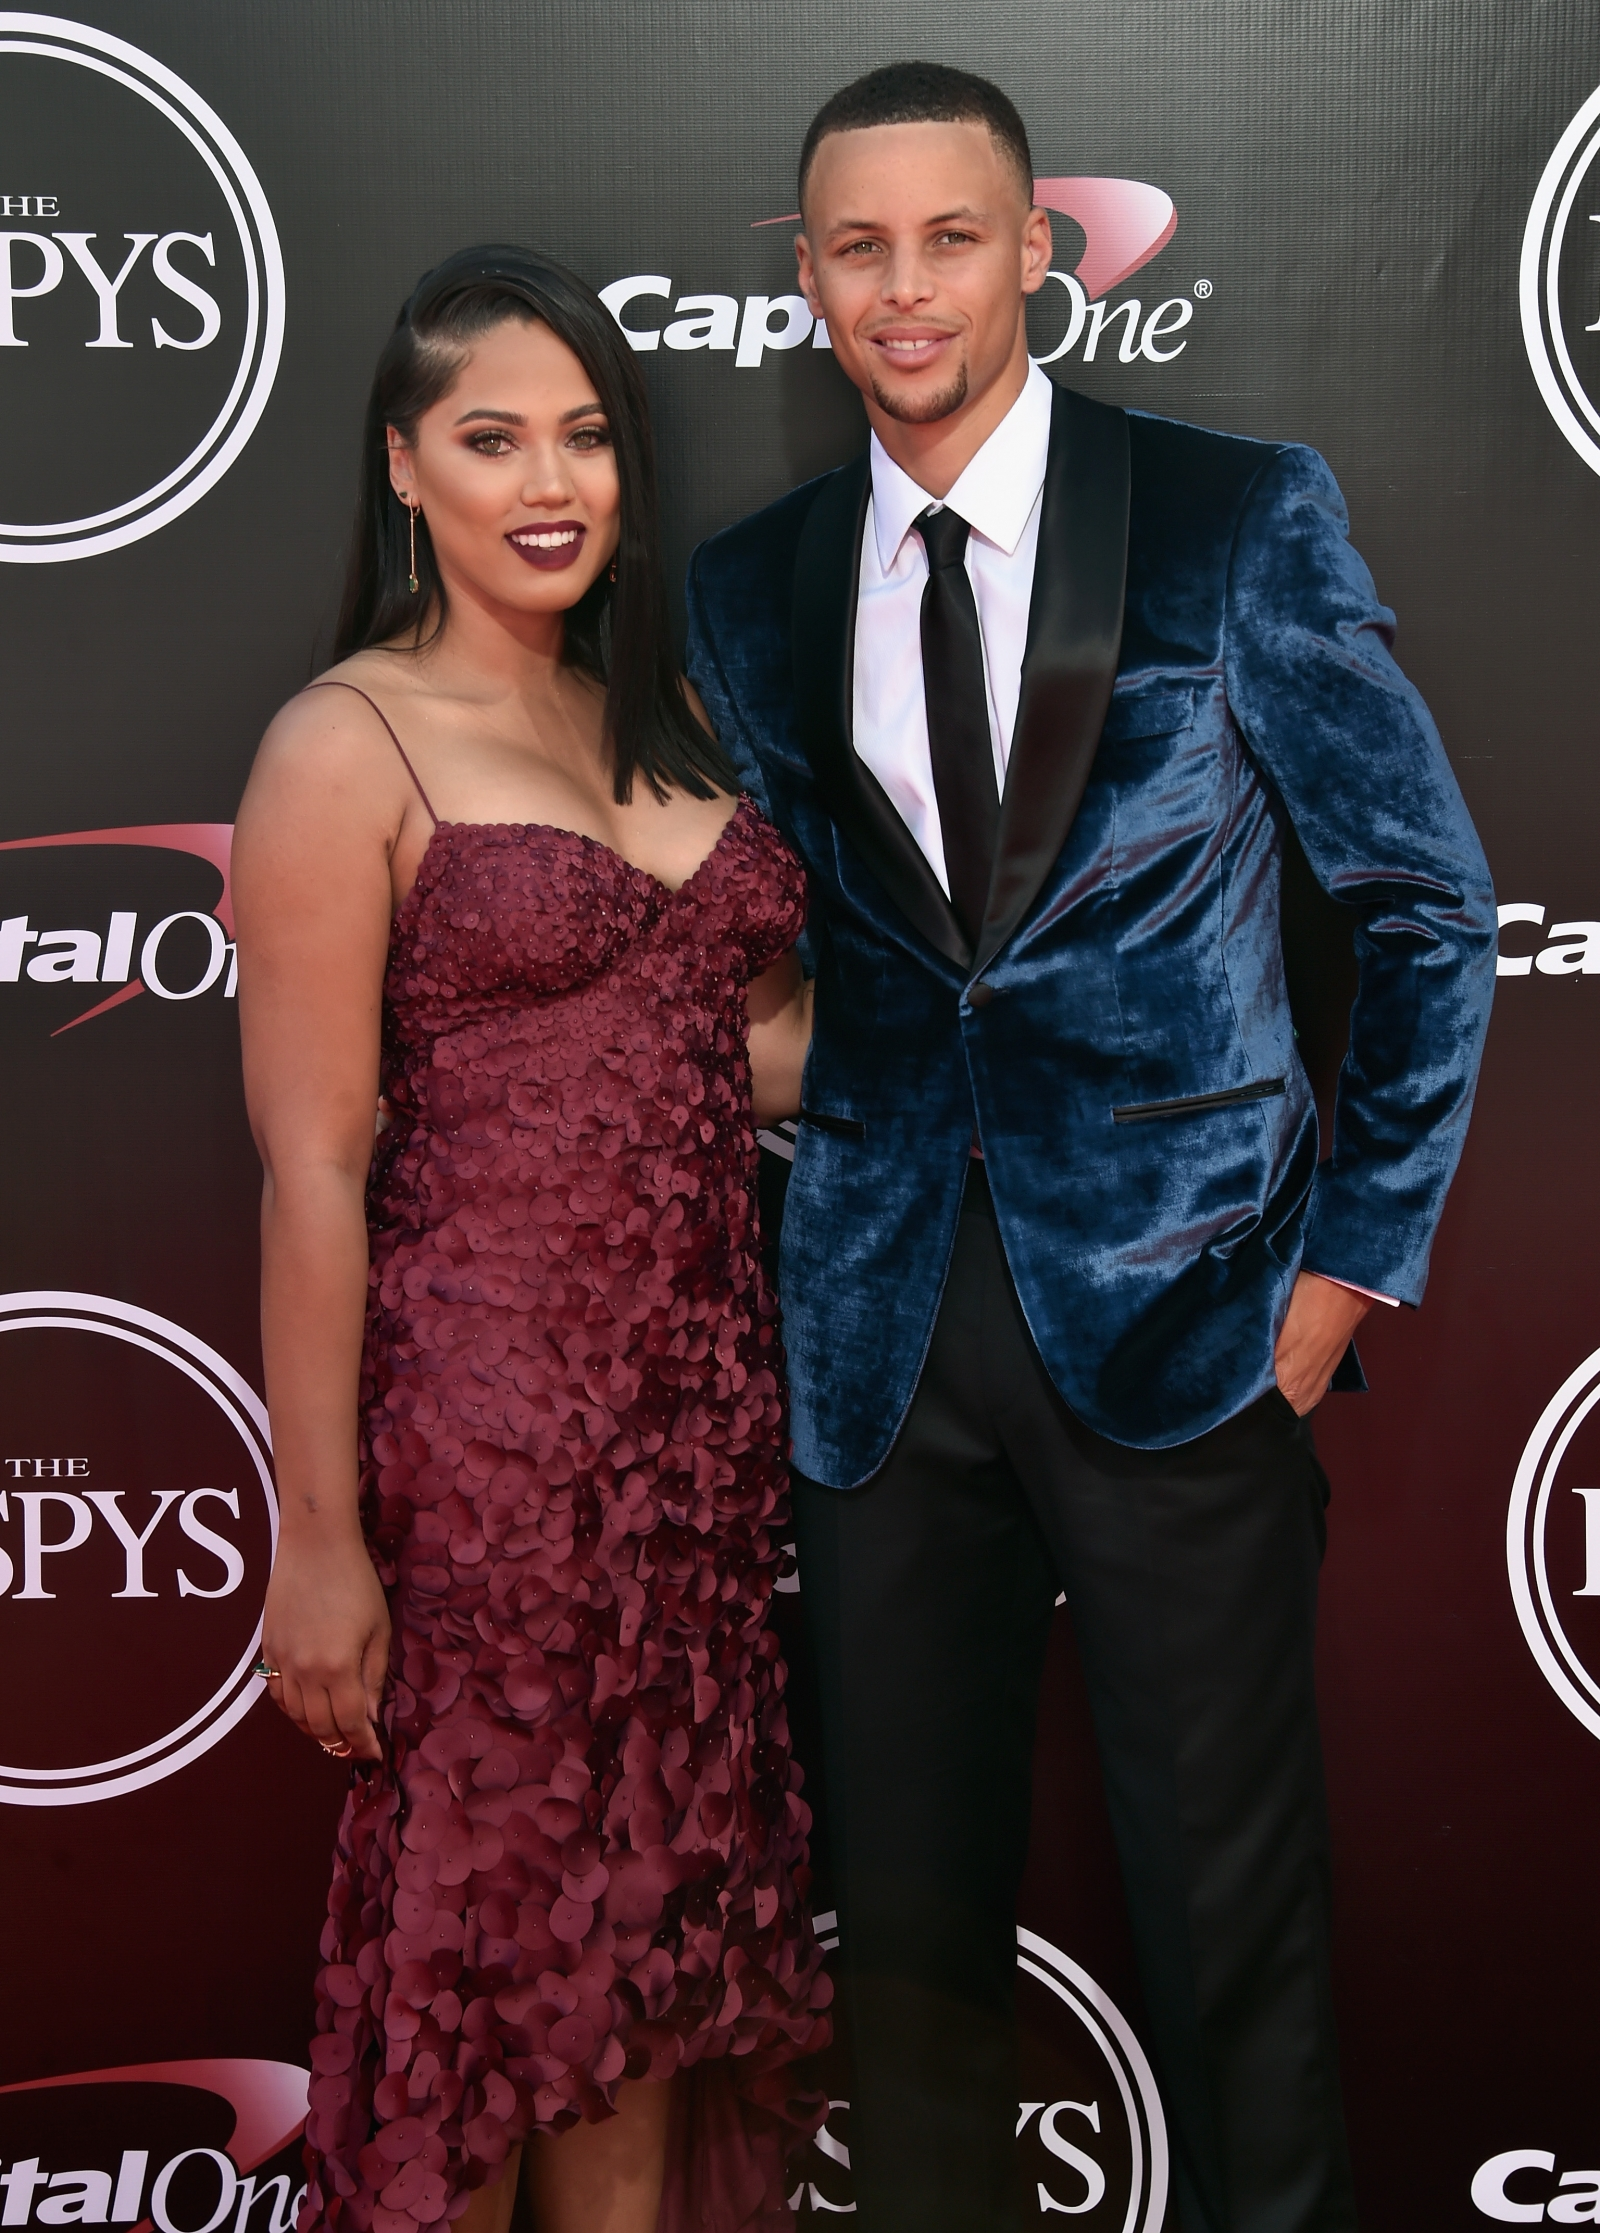 Stephen Curry and Ayesha